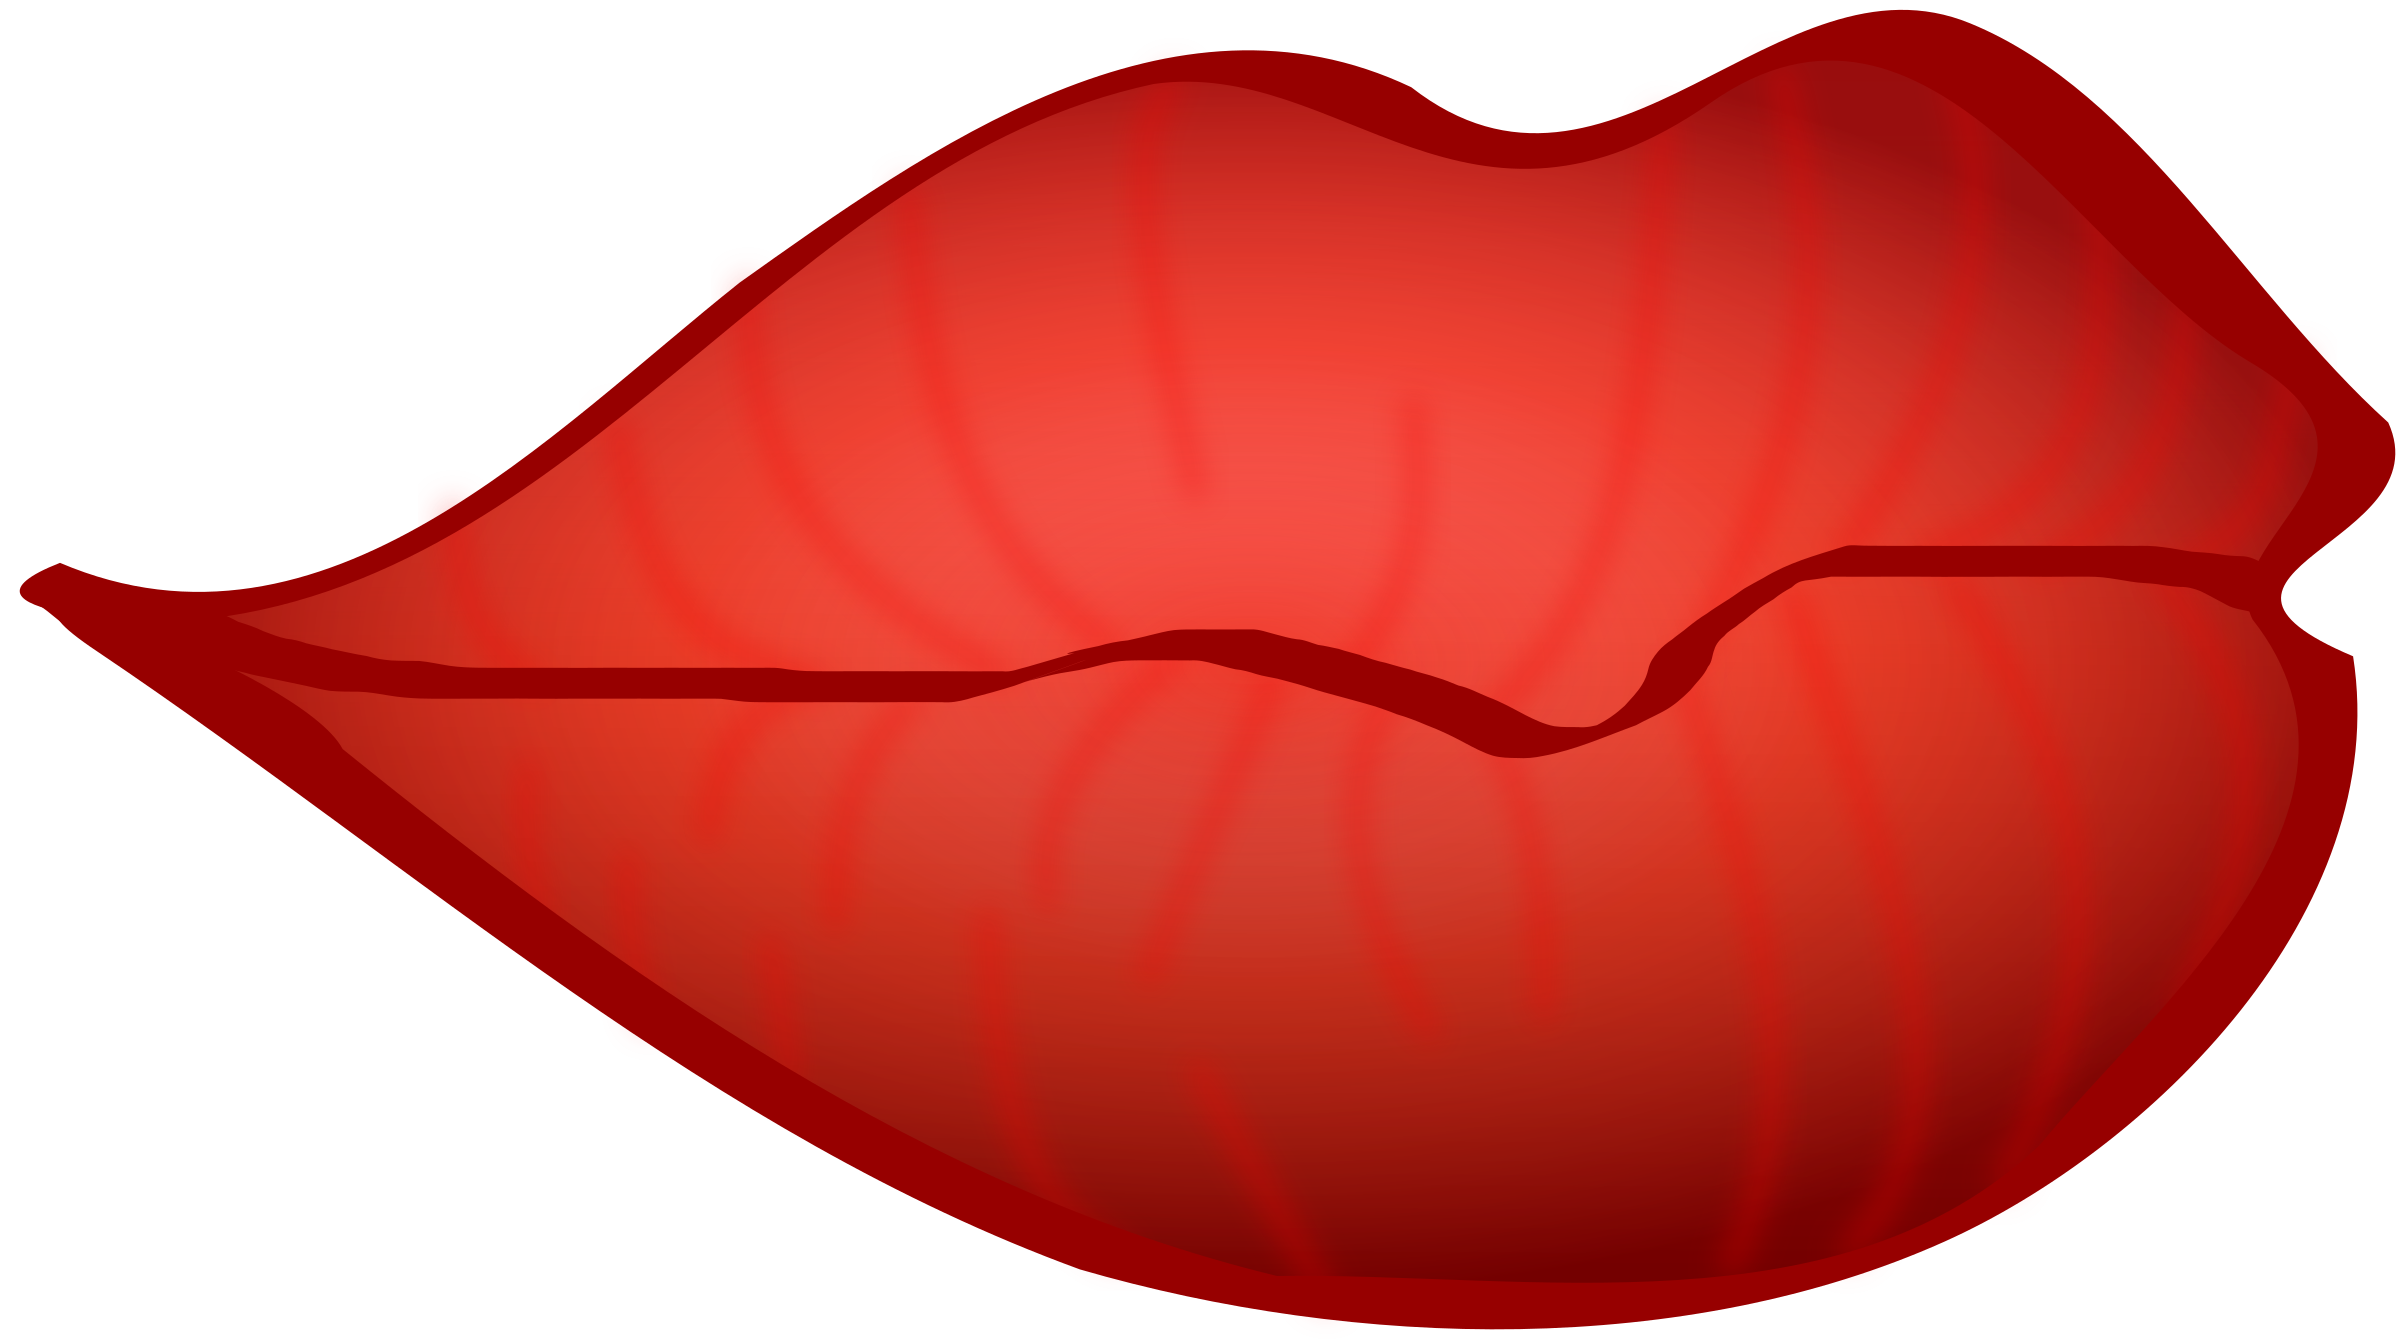 graphic library Free on dumielauxepices net. Lipstick clipart object.